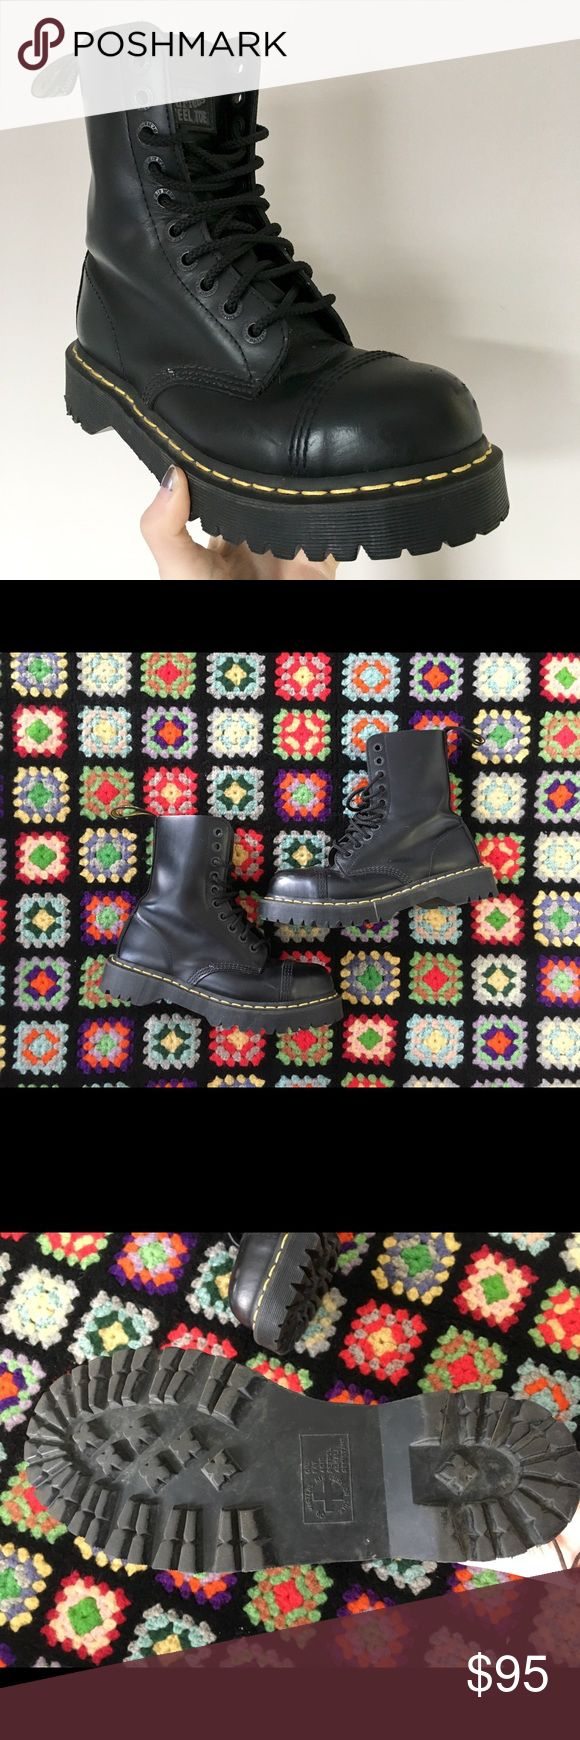 Dr Martens steel toe black boots Dr Martens Docs  8761  Steel toe black classic leather boots.  Size us ladies 8  Fits an 8.5  Great condition, a few scratches and scuffs on toes. Dr. Martens Shoes Combat & Moto Boots